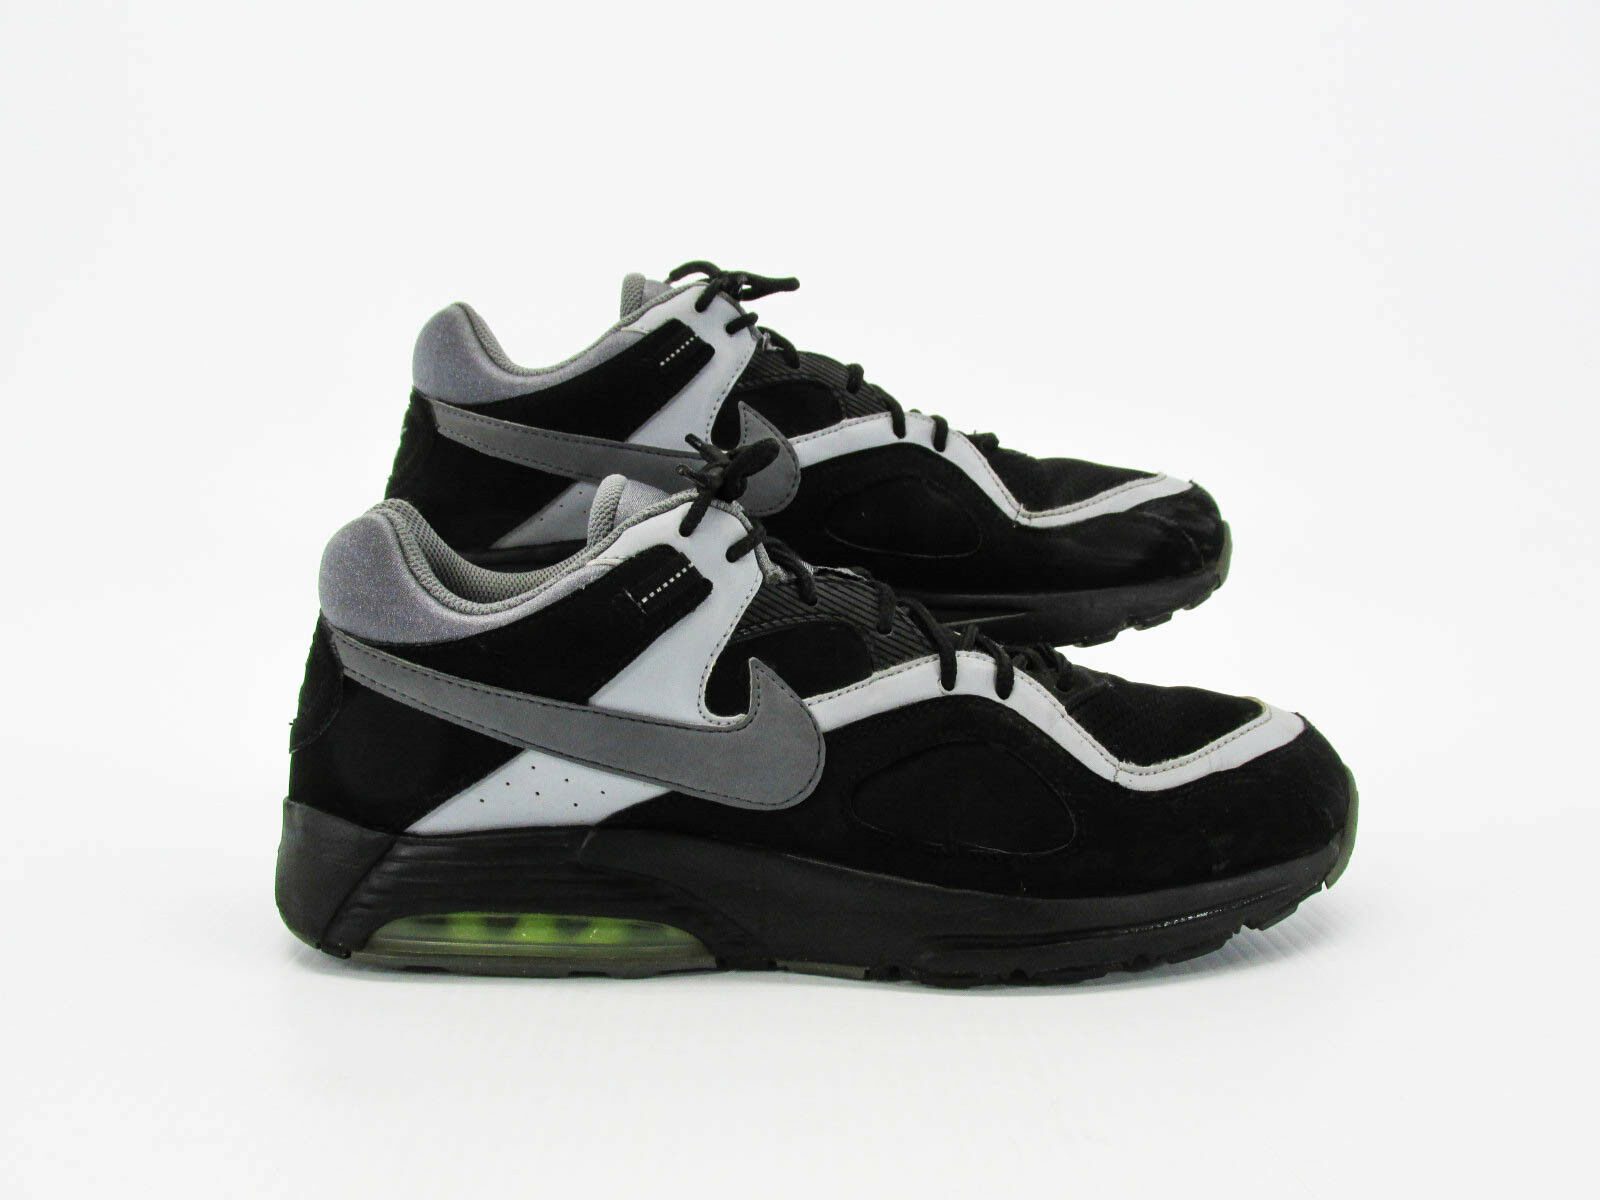 Nike Air Max Go Strong Men Black Training Shoes Size 12M Pre Owned CQ